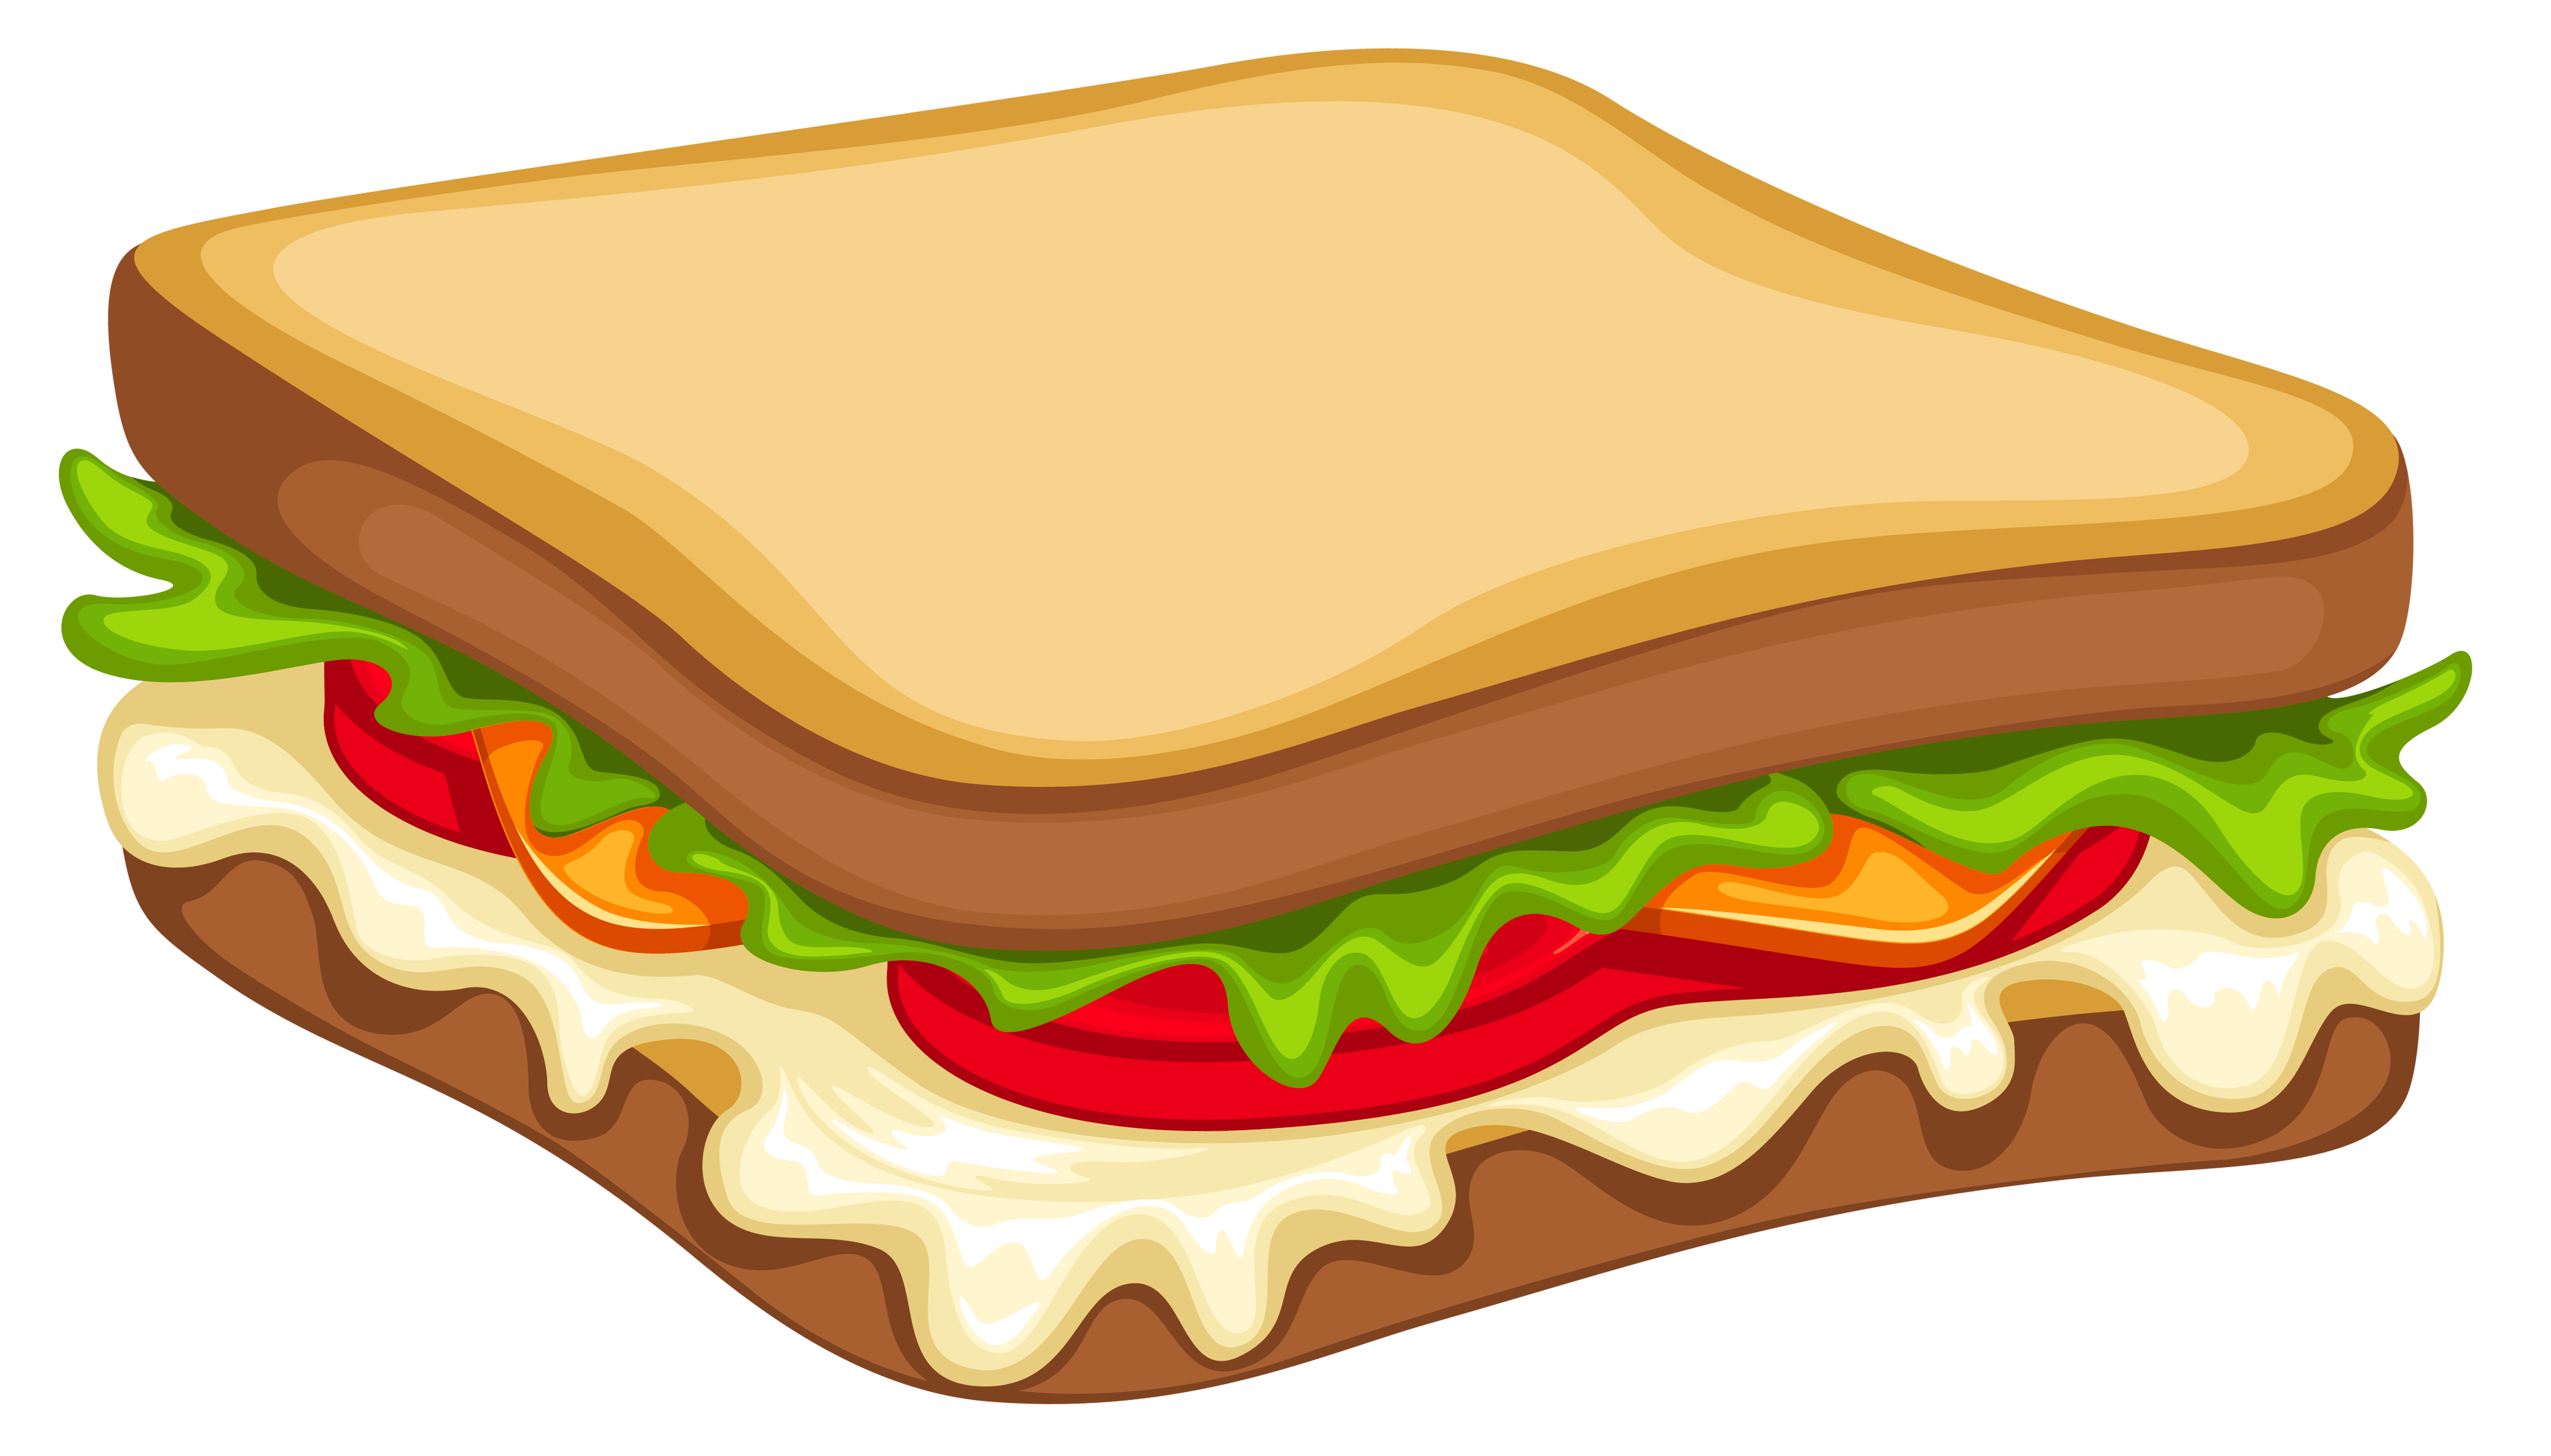 Sandwich clipart Clipground in 2020 Food png, Image